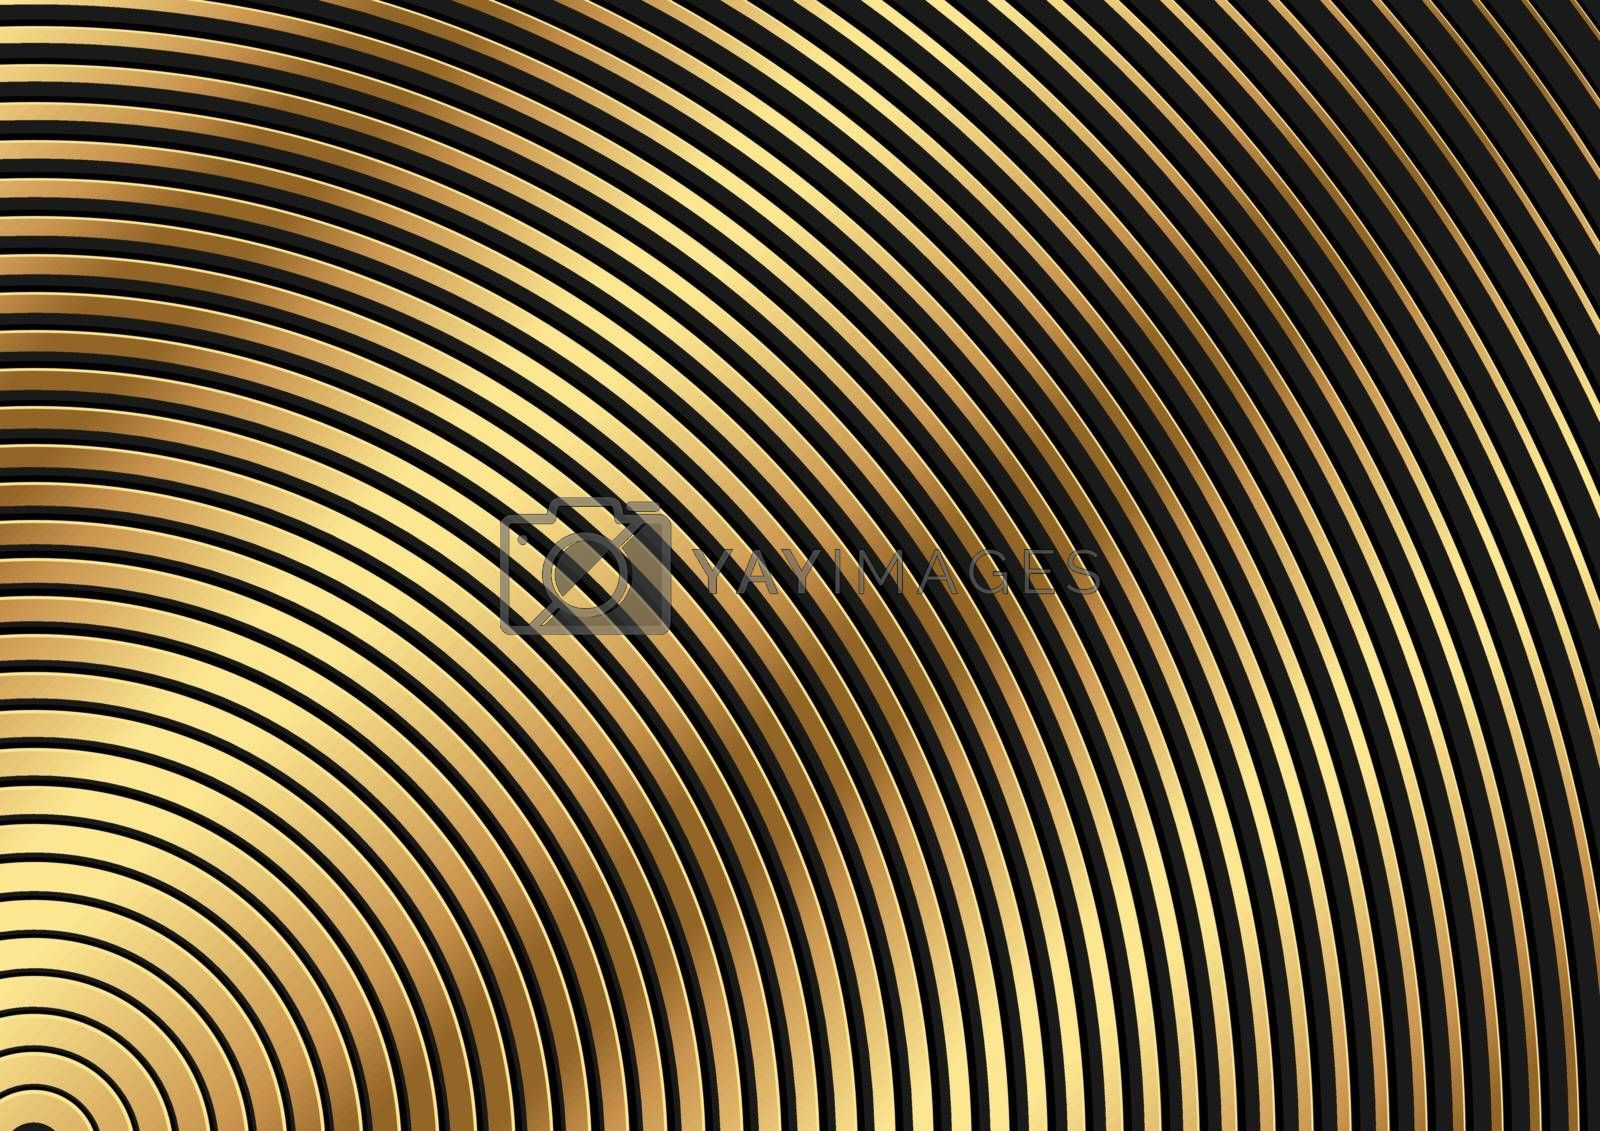 Golden Circular Striped Pattern - Abstract Background Illustration for Your Graphic Design, Vector